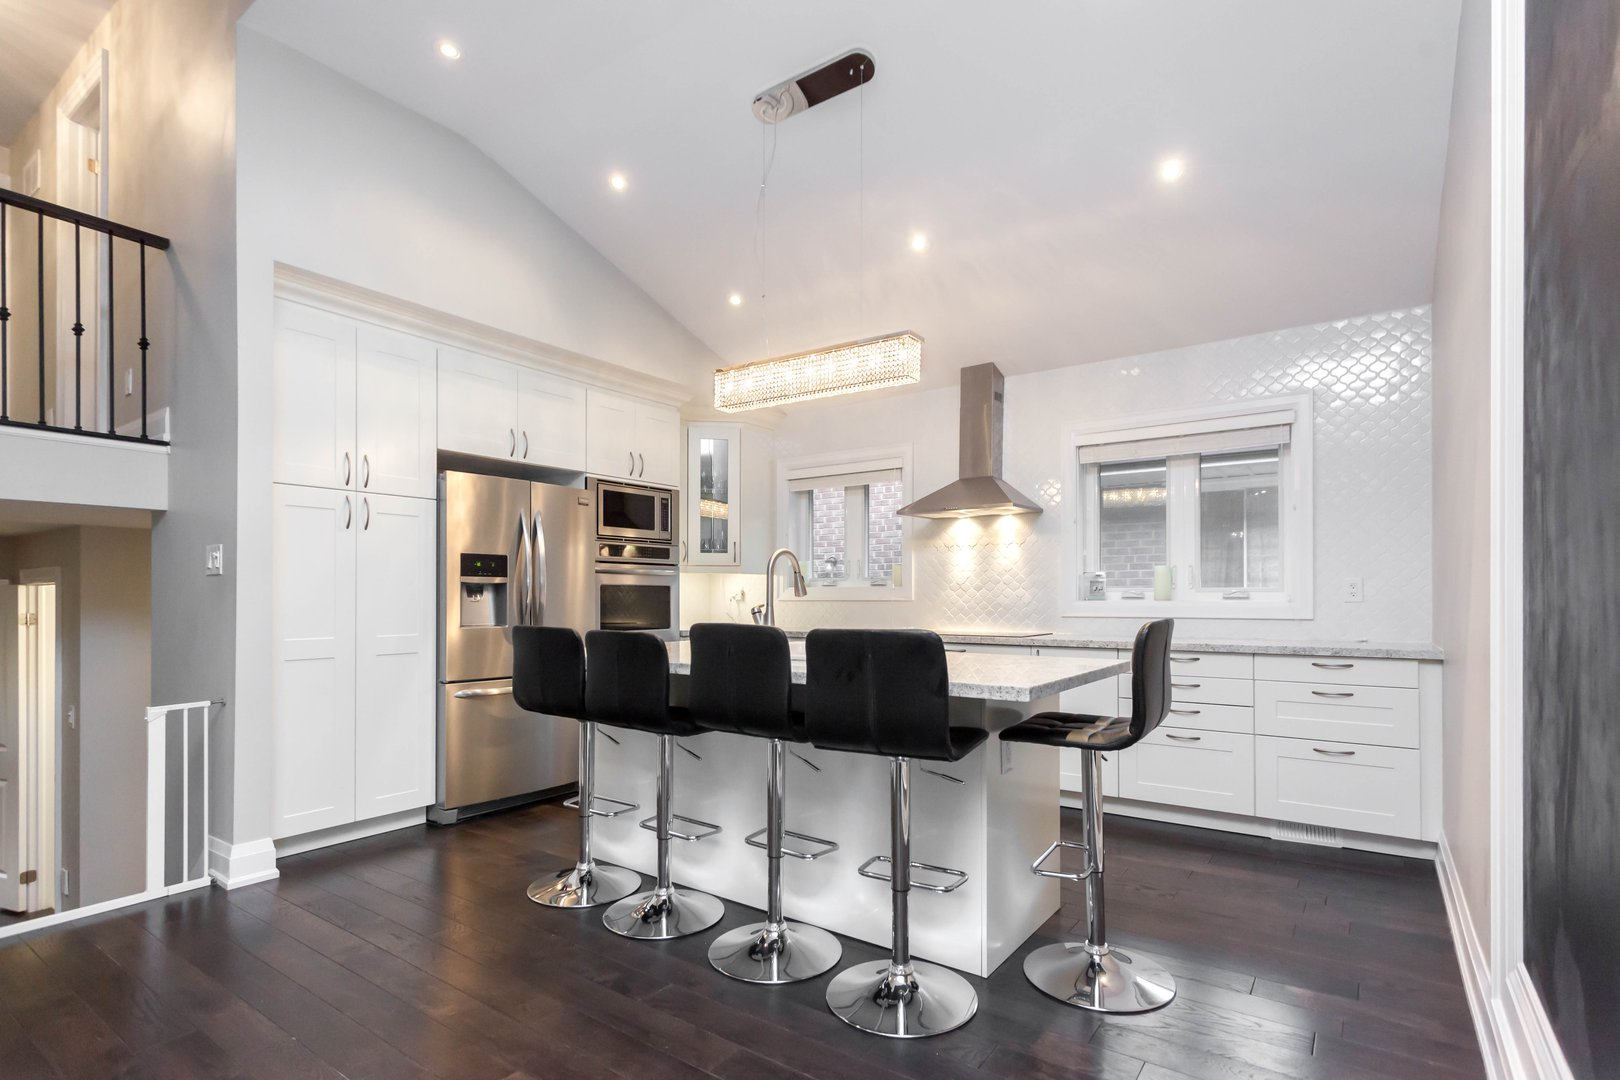 House for rent at 84 Laurel Avenue, Etobicoke, ON. This is the kitchen with natural light, kitchen bar, stainless steel, hardwood floor and vaulted ceiling.